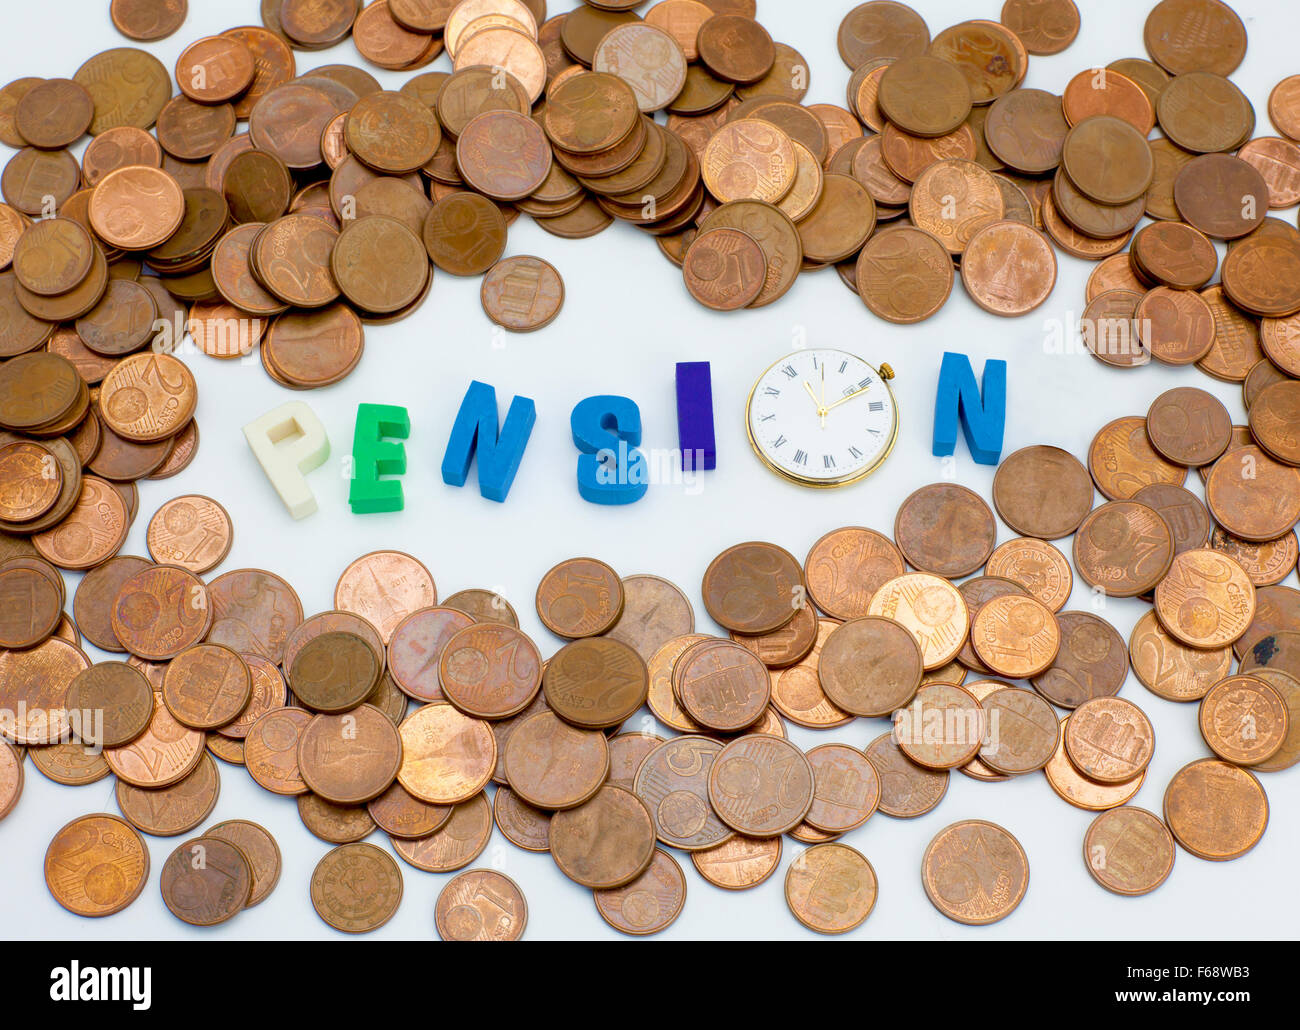 Pension - word letters with a clock - Stock Image